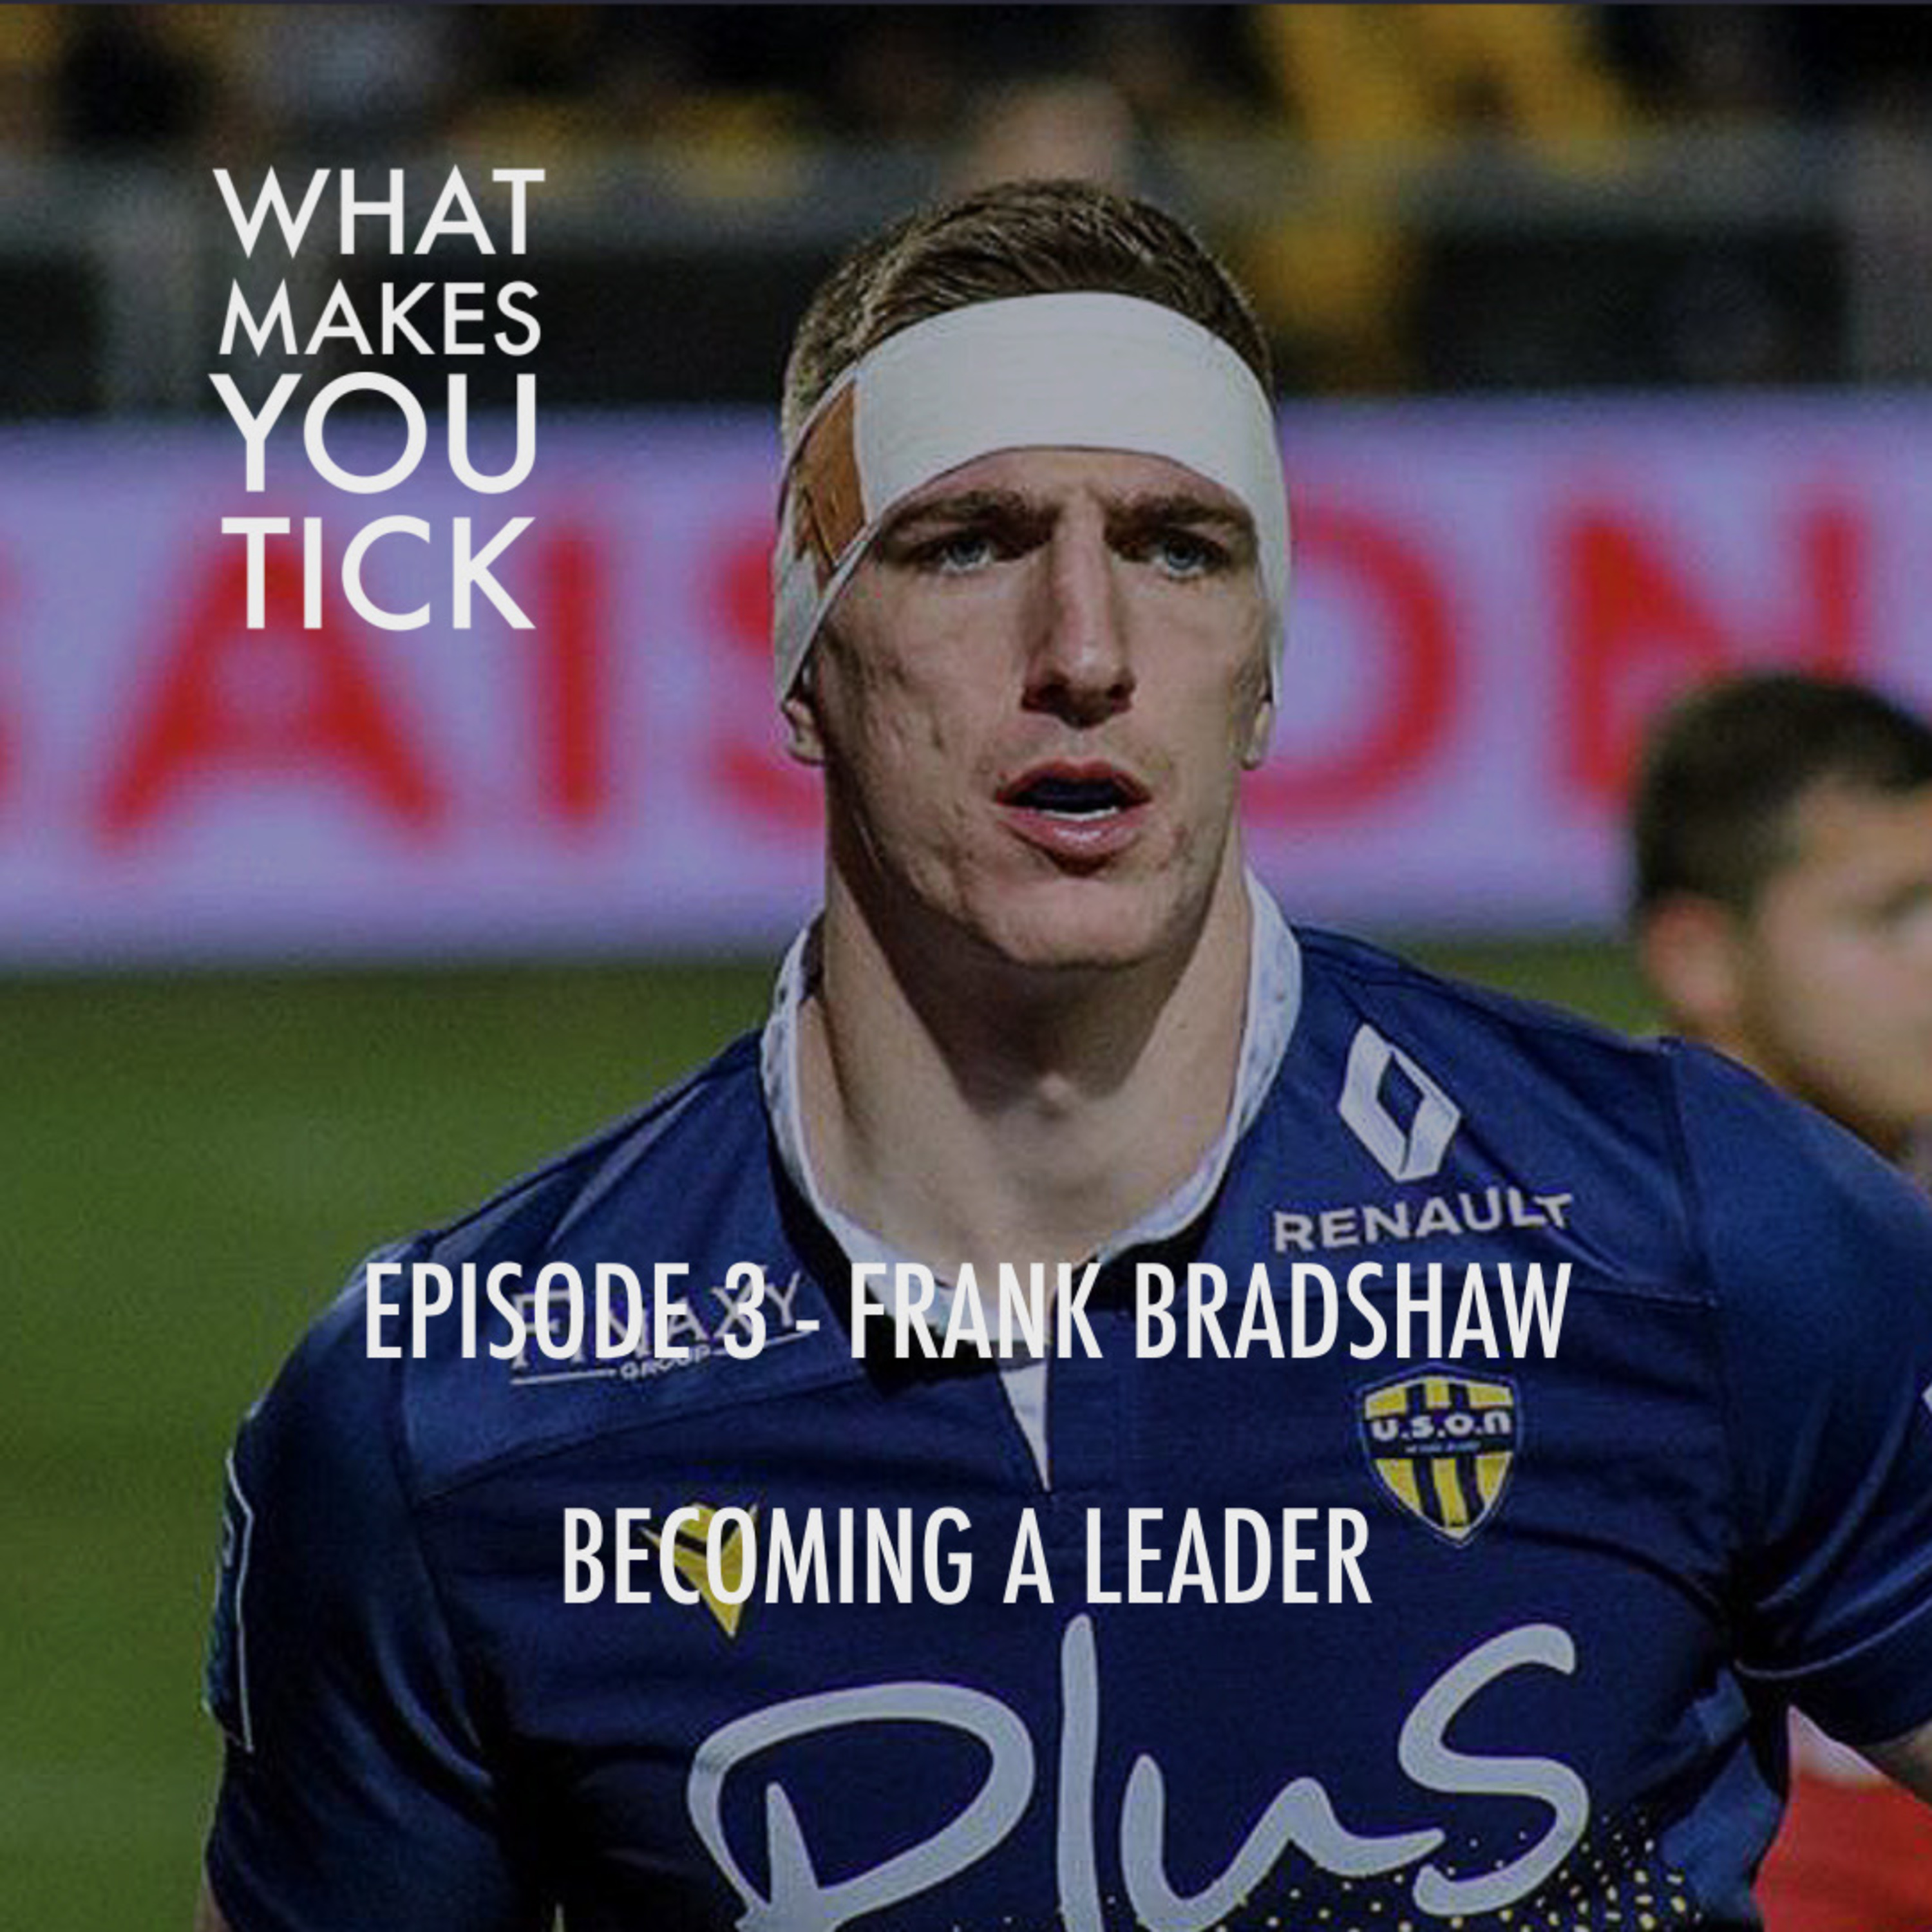 Episode 3 - Becoming a leader